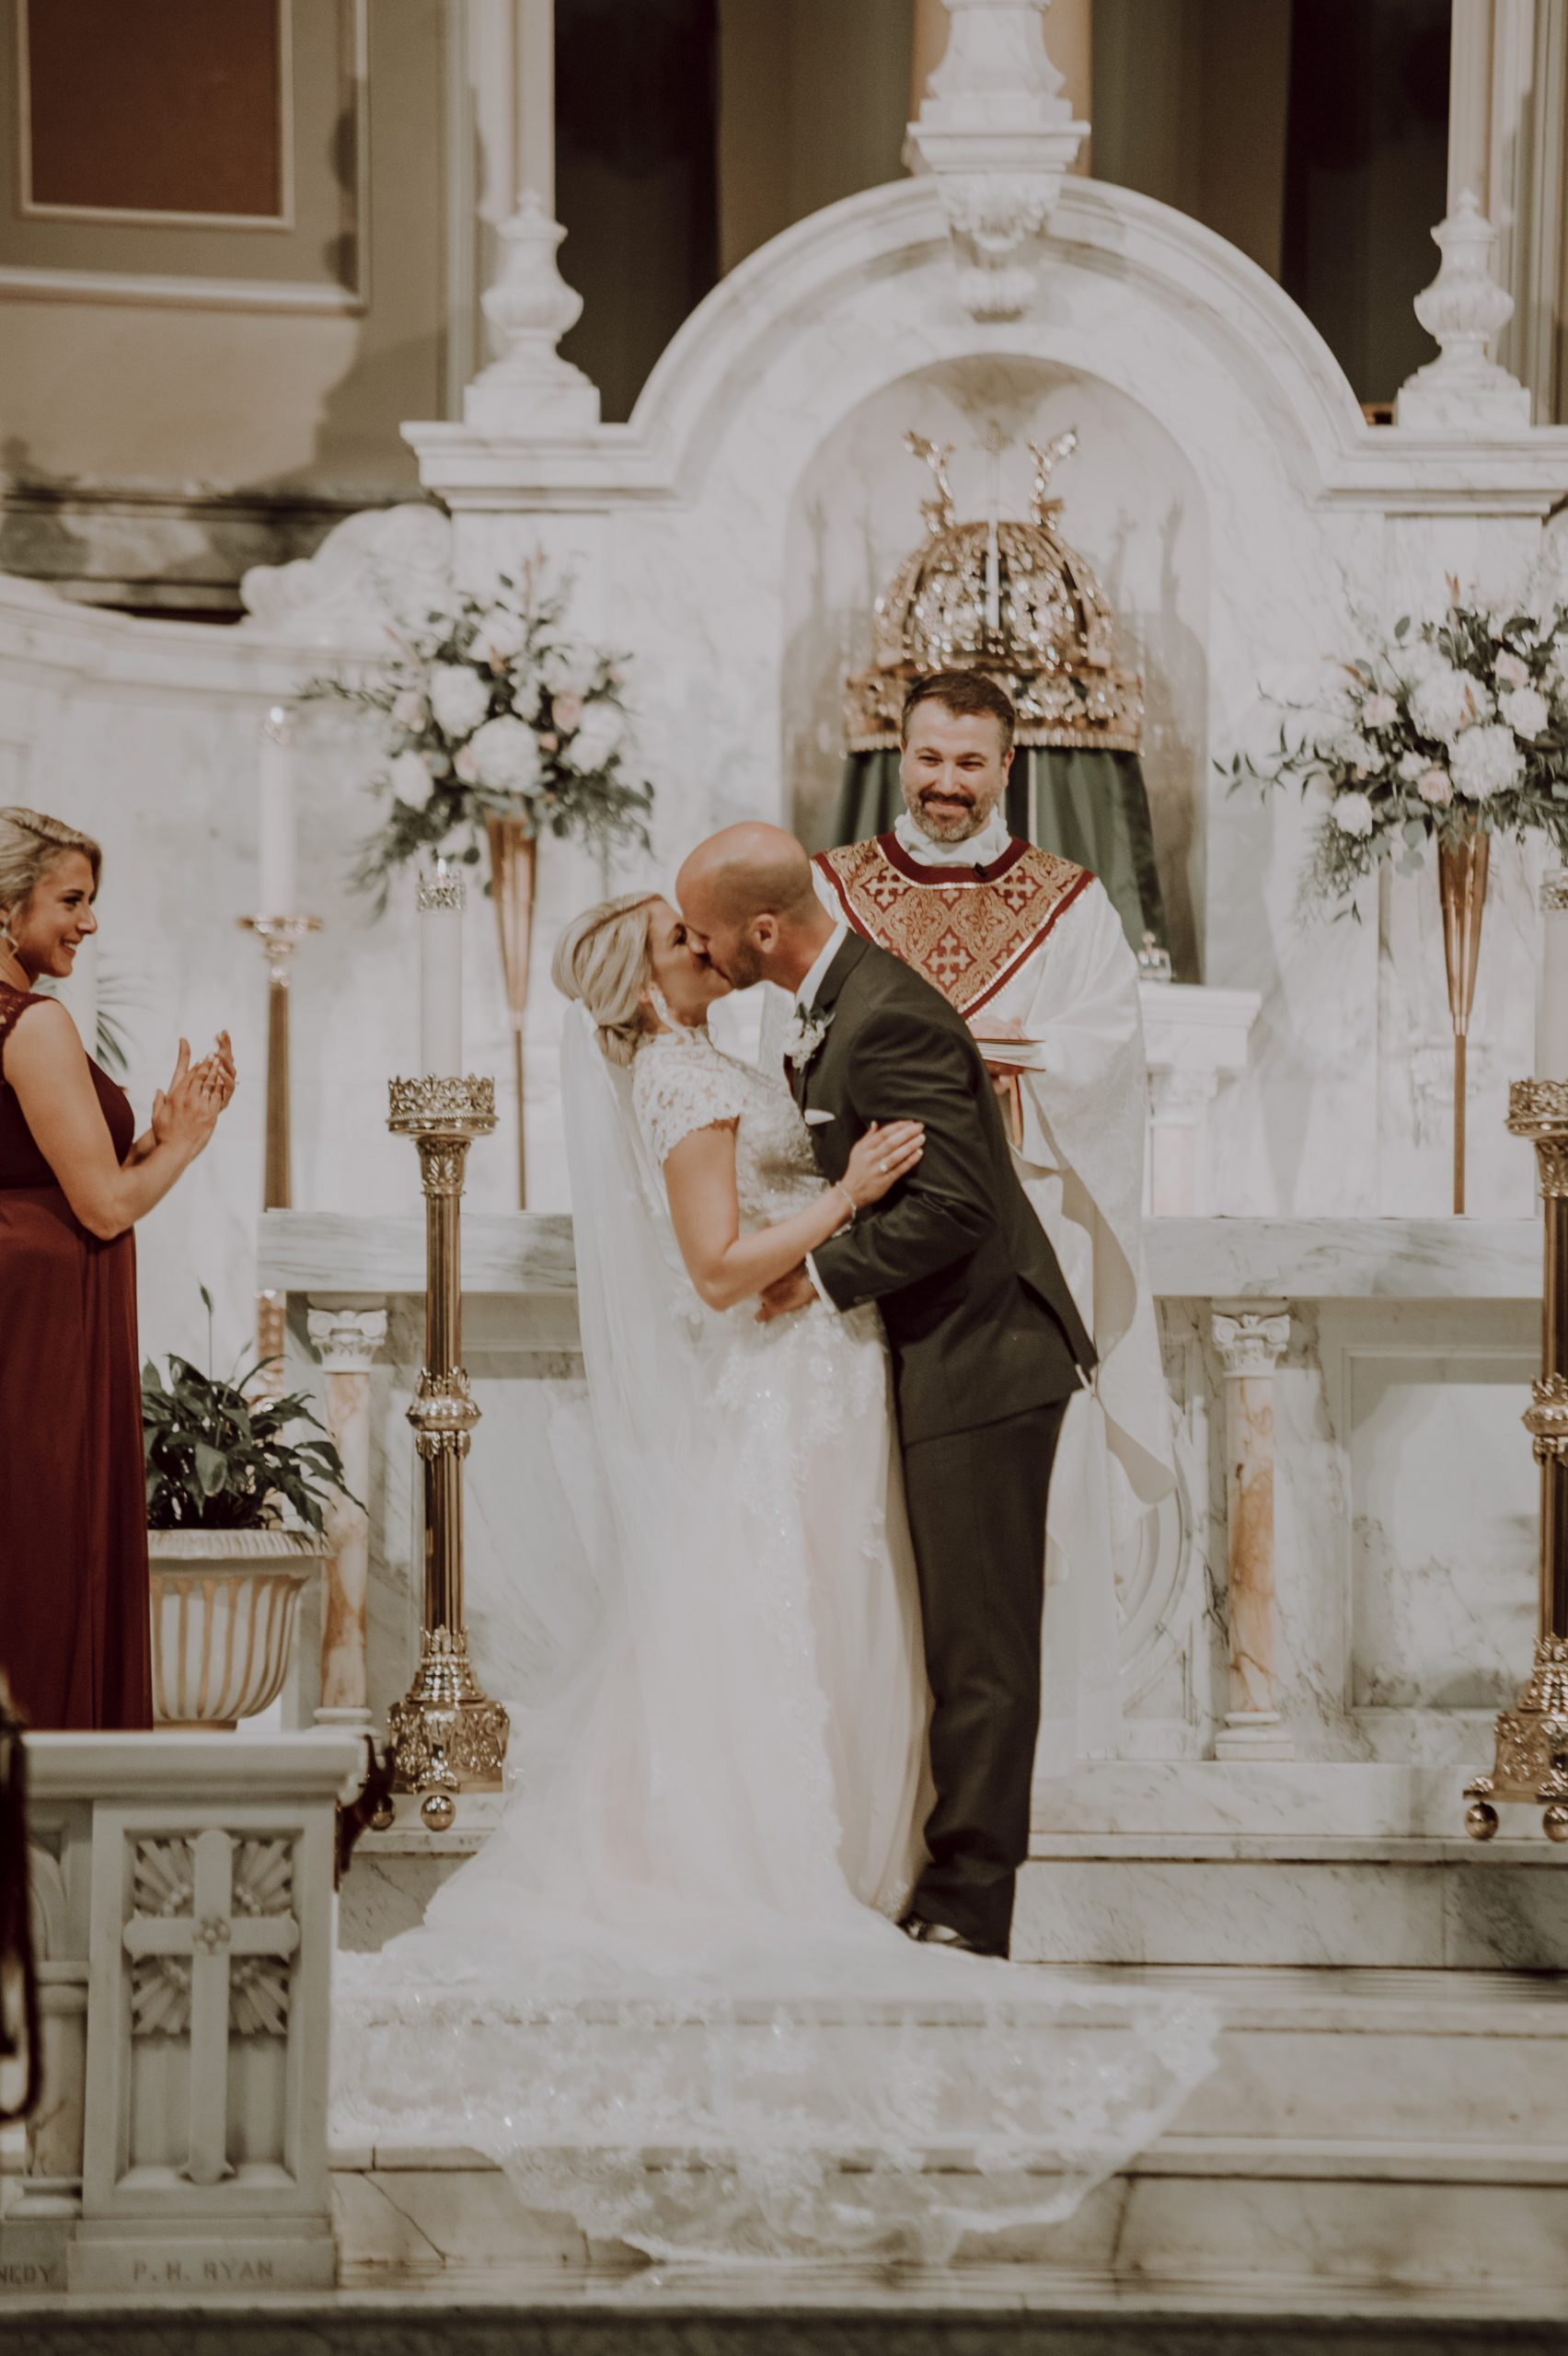 I now pronounce you, husband and wife. Captured by Lovefusion Photography at Stock's Manor in Mechanicsburg, PA. Featured on Dream Weddings.